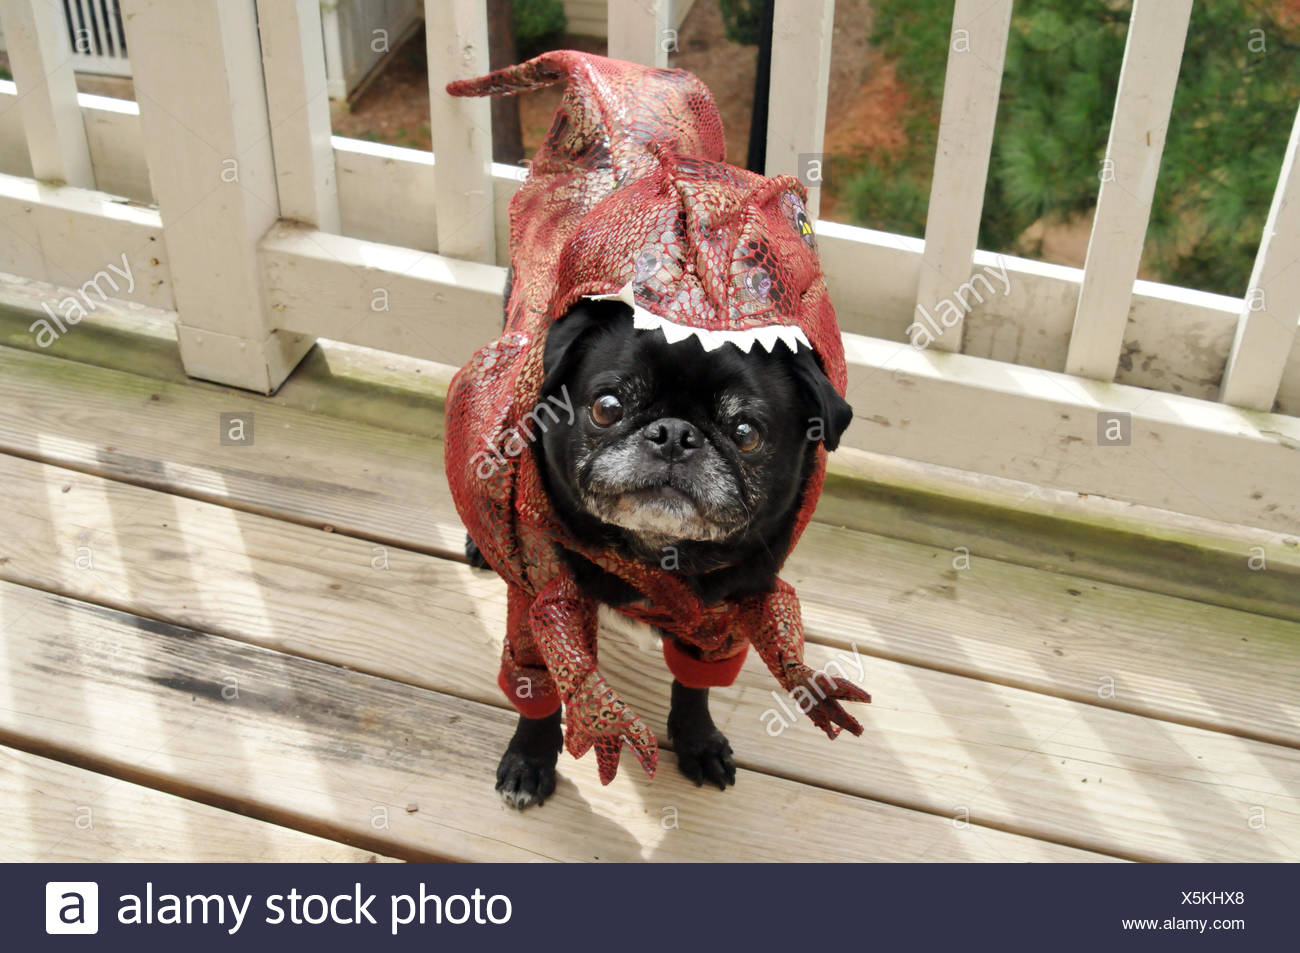 View of dog in costume - Stock Image & Dog In Costume Stock Photos u0026 Dog In Costume Stock Images - Alamy